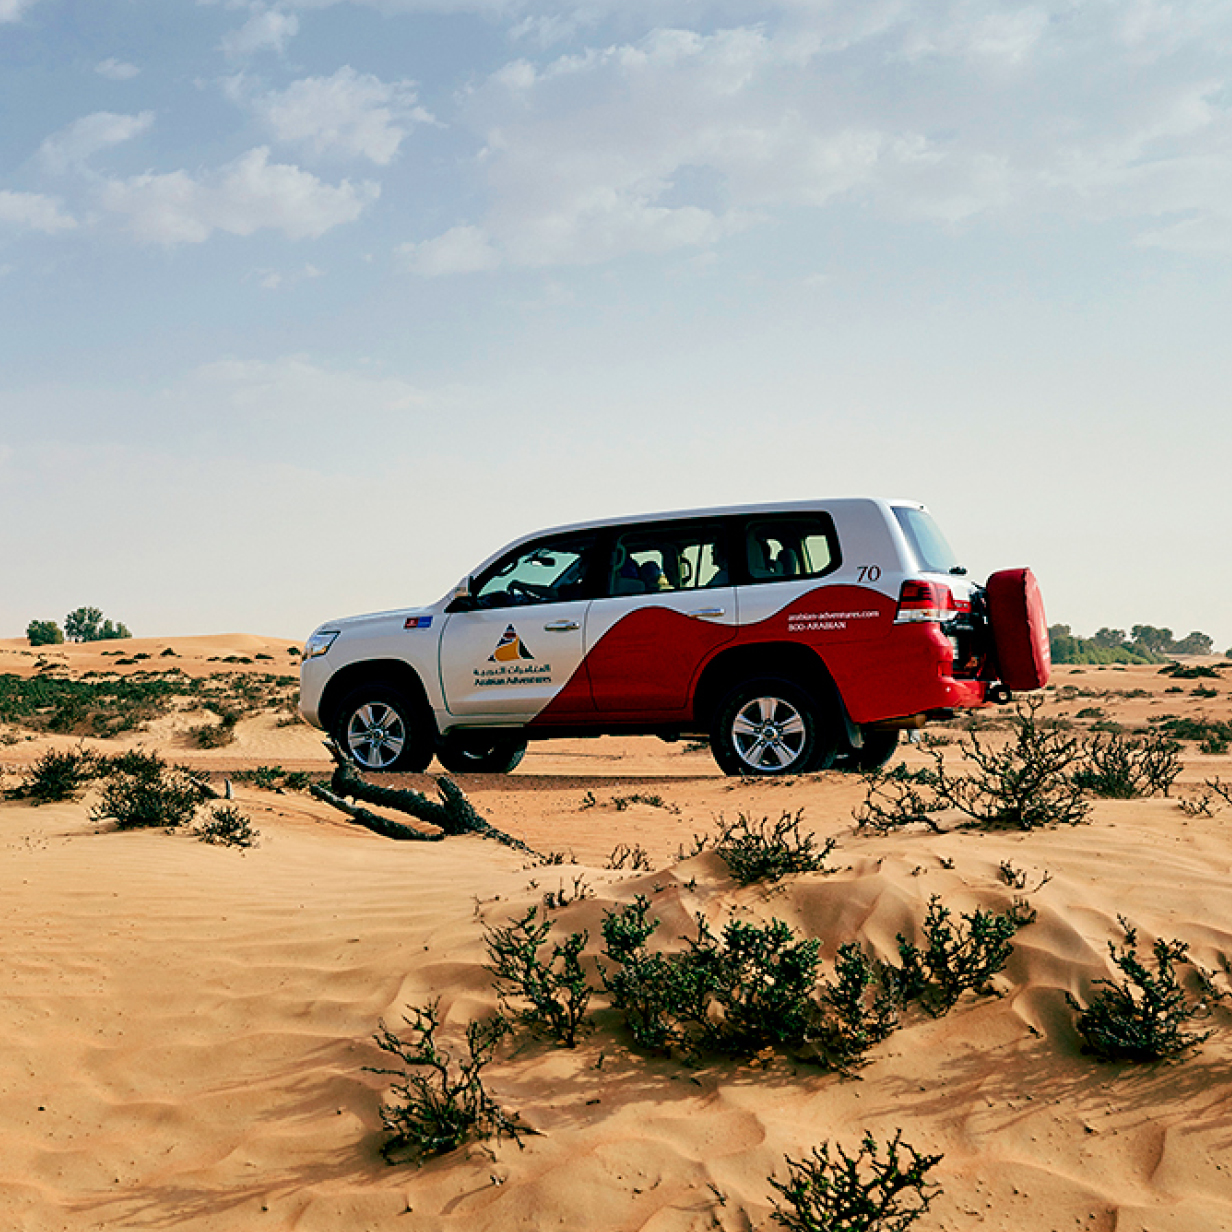 Overnight Safari in Dubai - Pick-up, , large